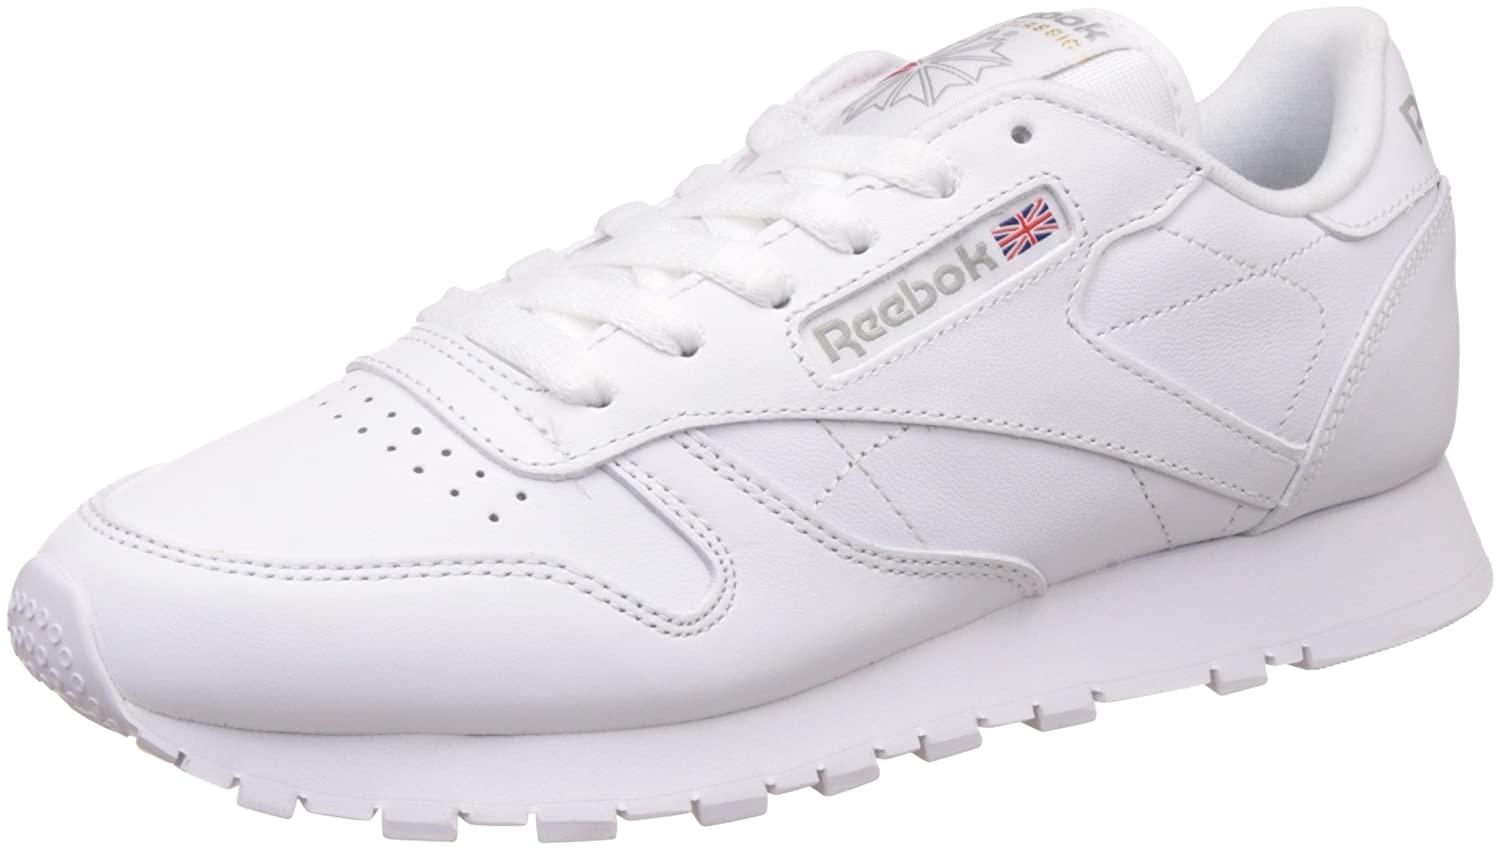 Reebok Classic Leather, Baskets 19996 Basses Femme Blanc Blanc (Intense Leather, White) 642bc75 - latesttechnology.space